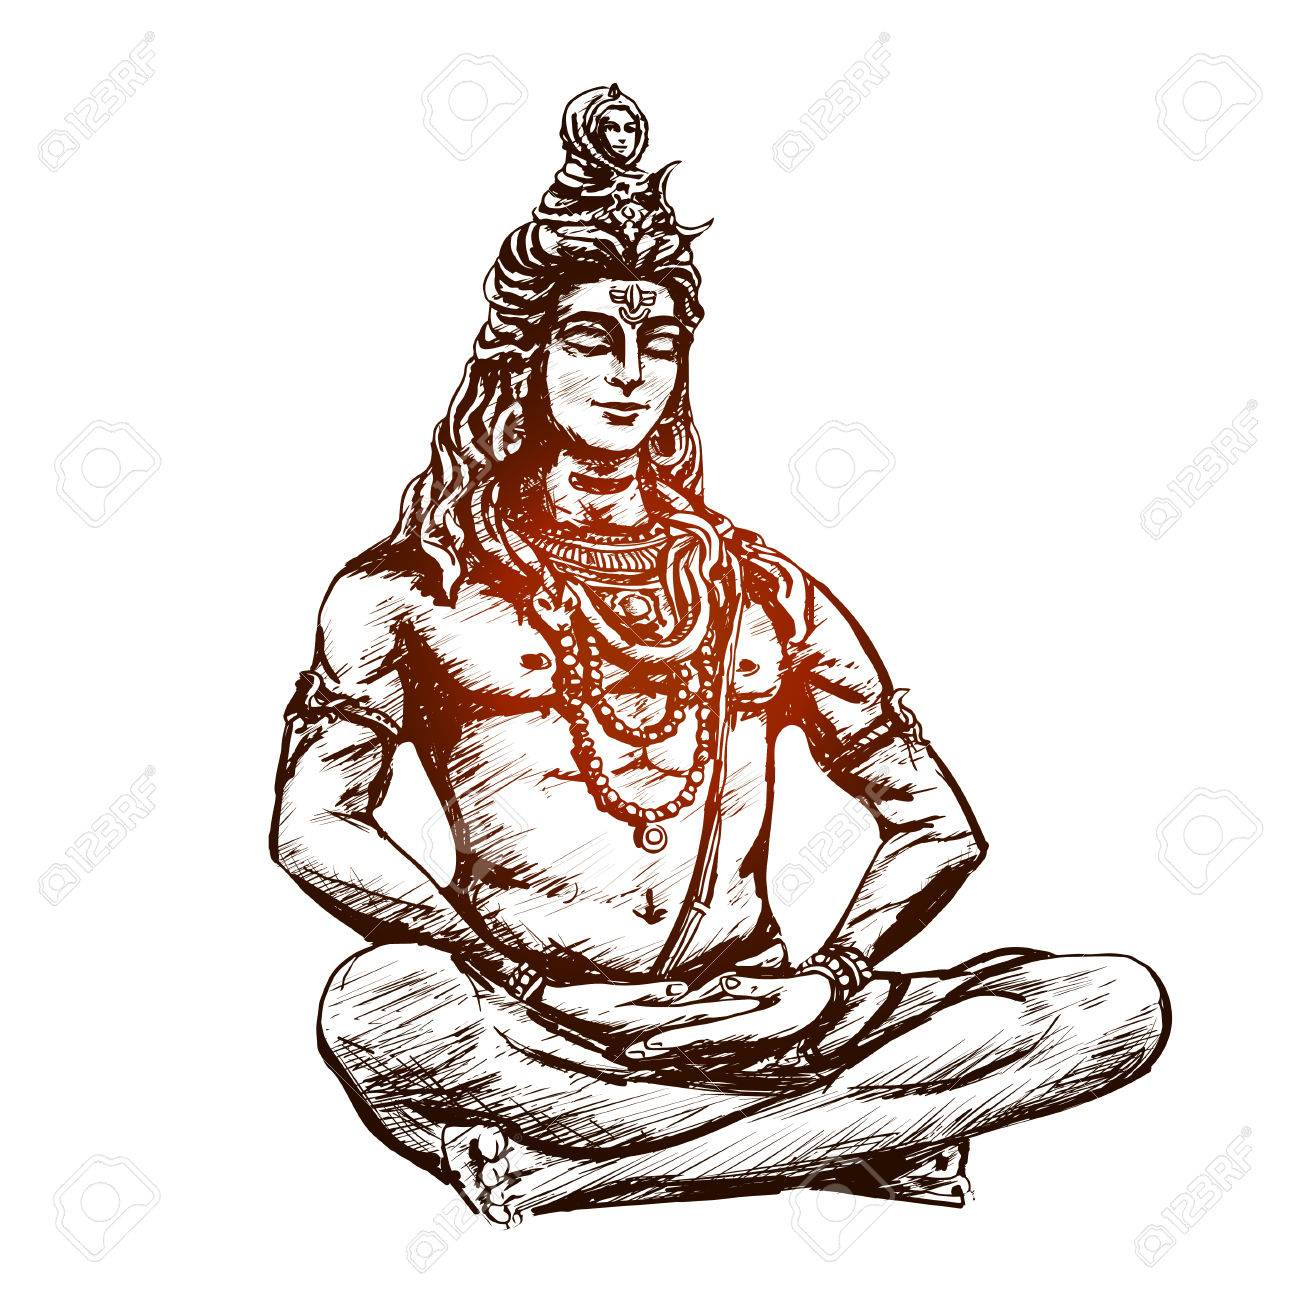 Lord Shiva in the lotus posit - Lord Shiva Clipart